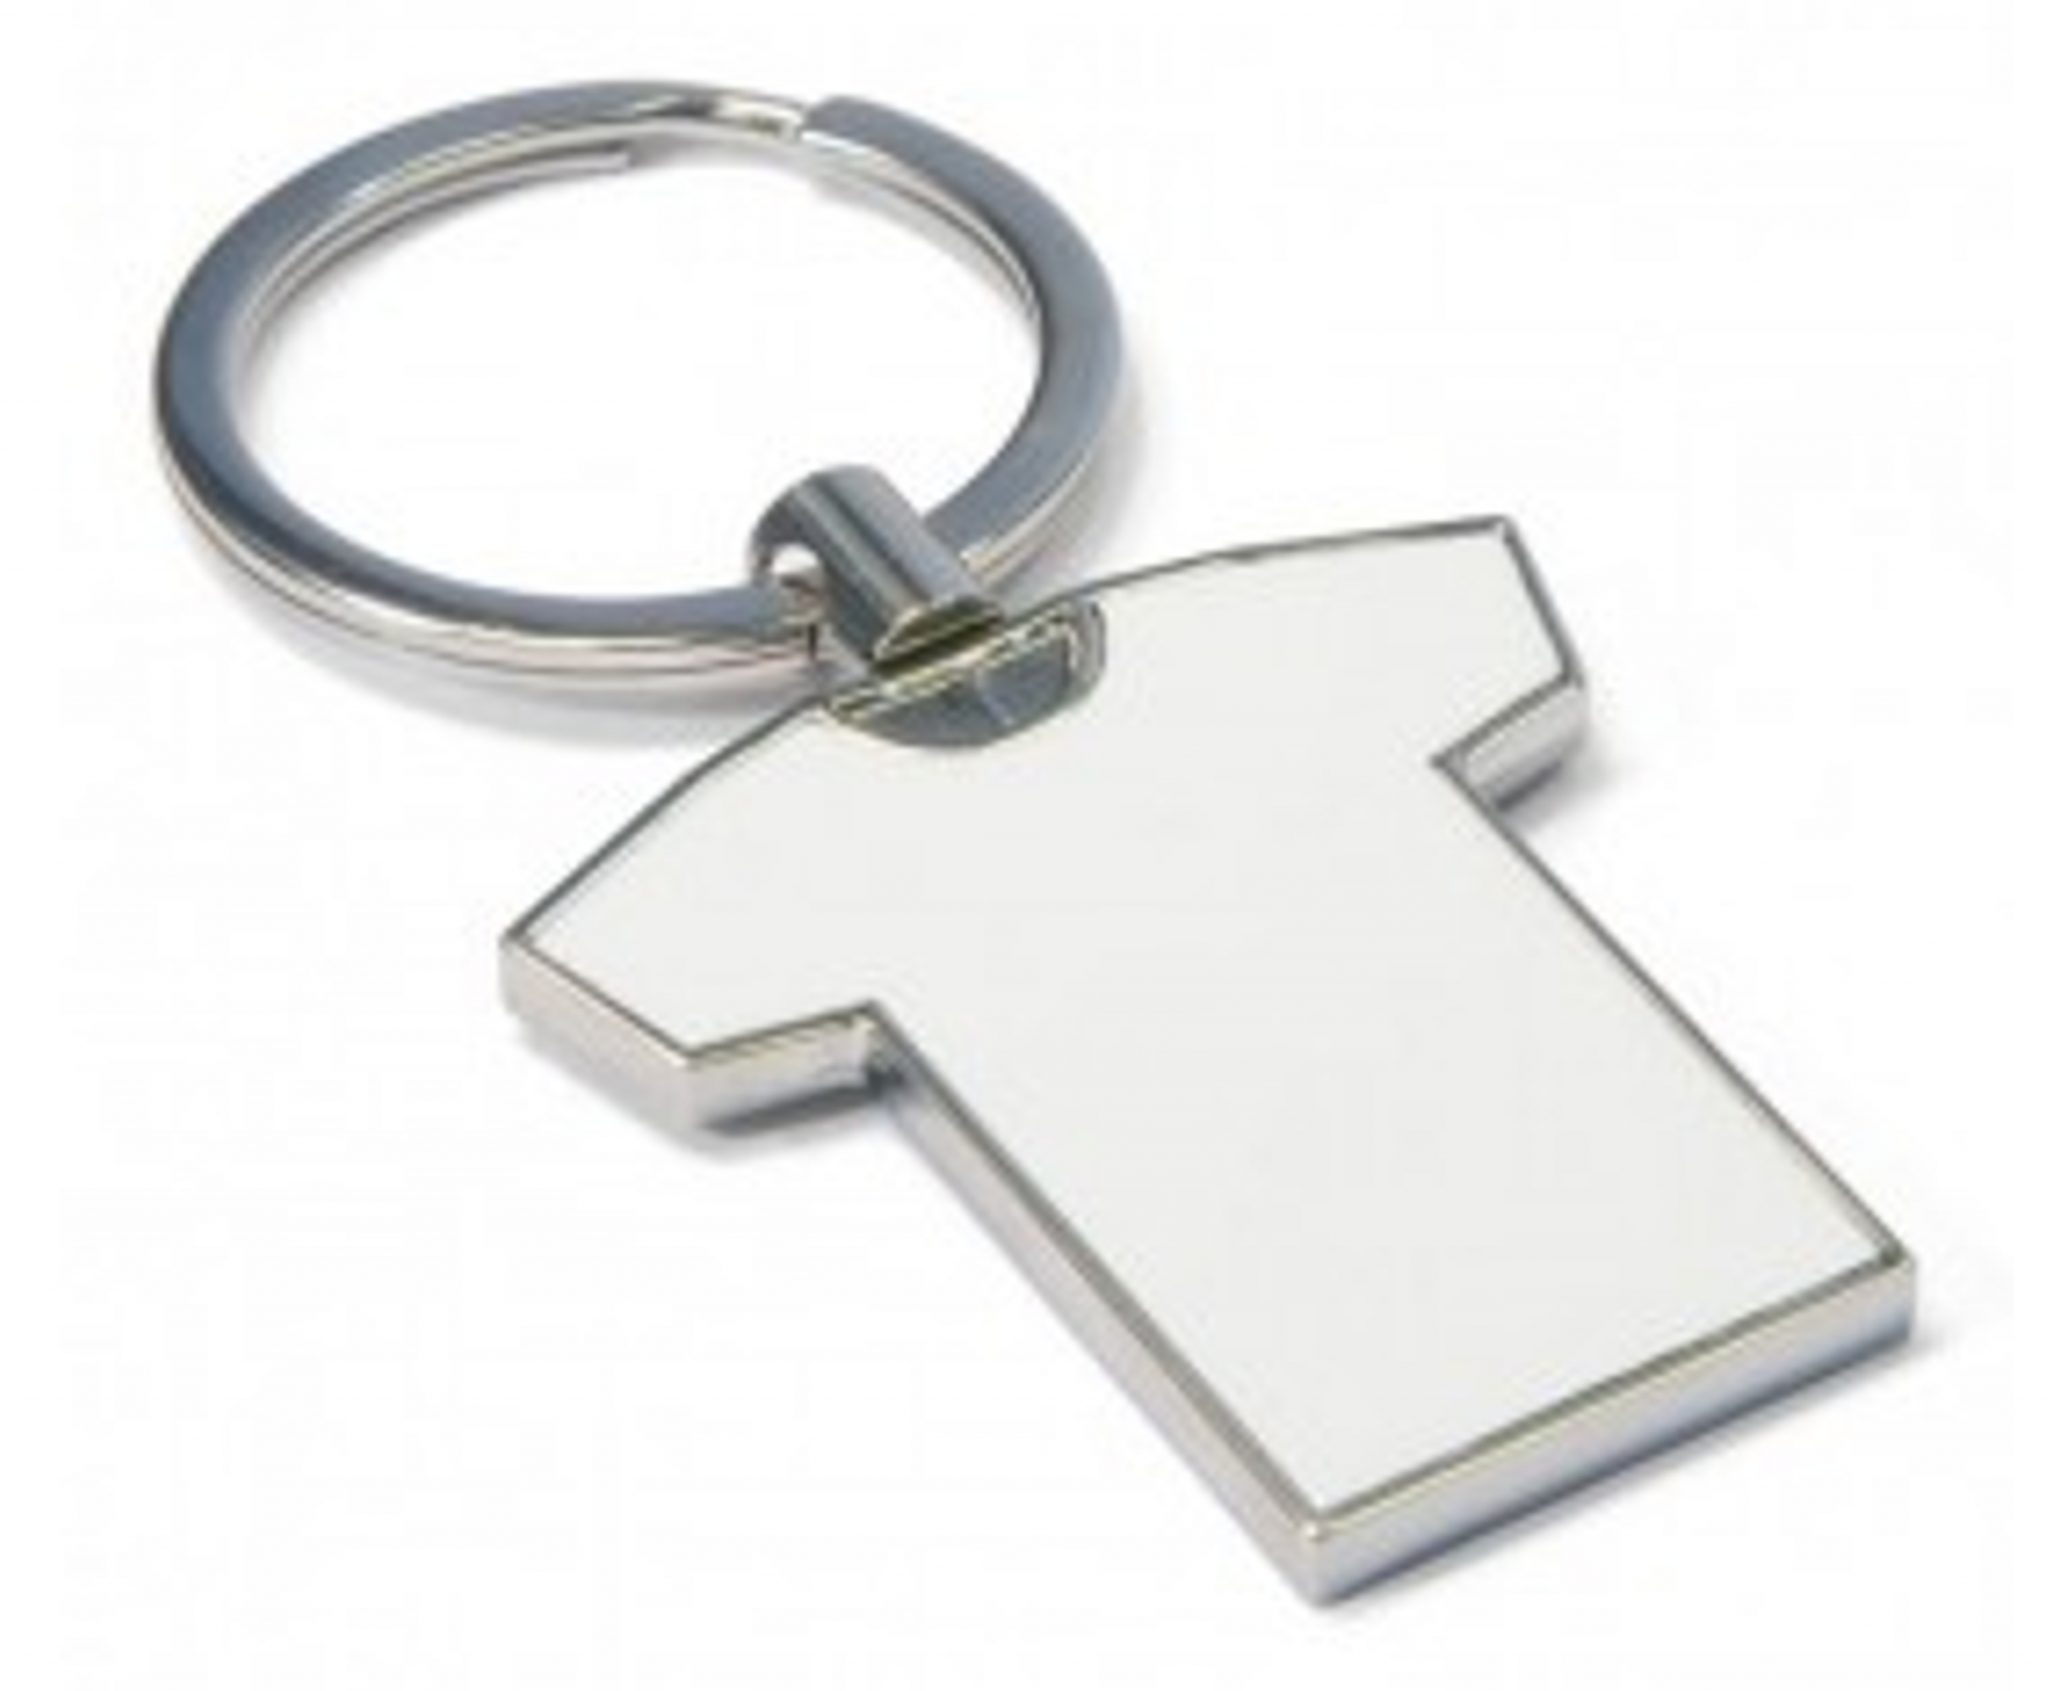 printed key rings torquay, key ring printers torquay, printed gifts torquay, printed merchandise